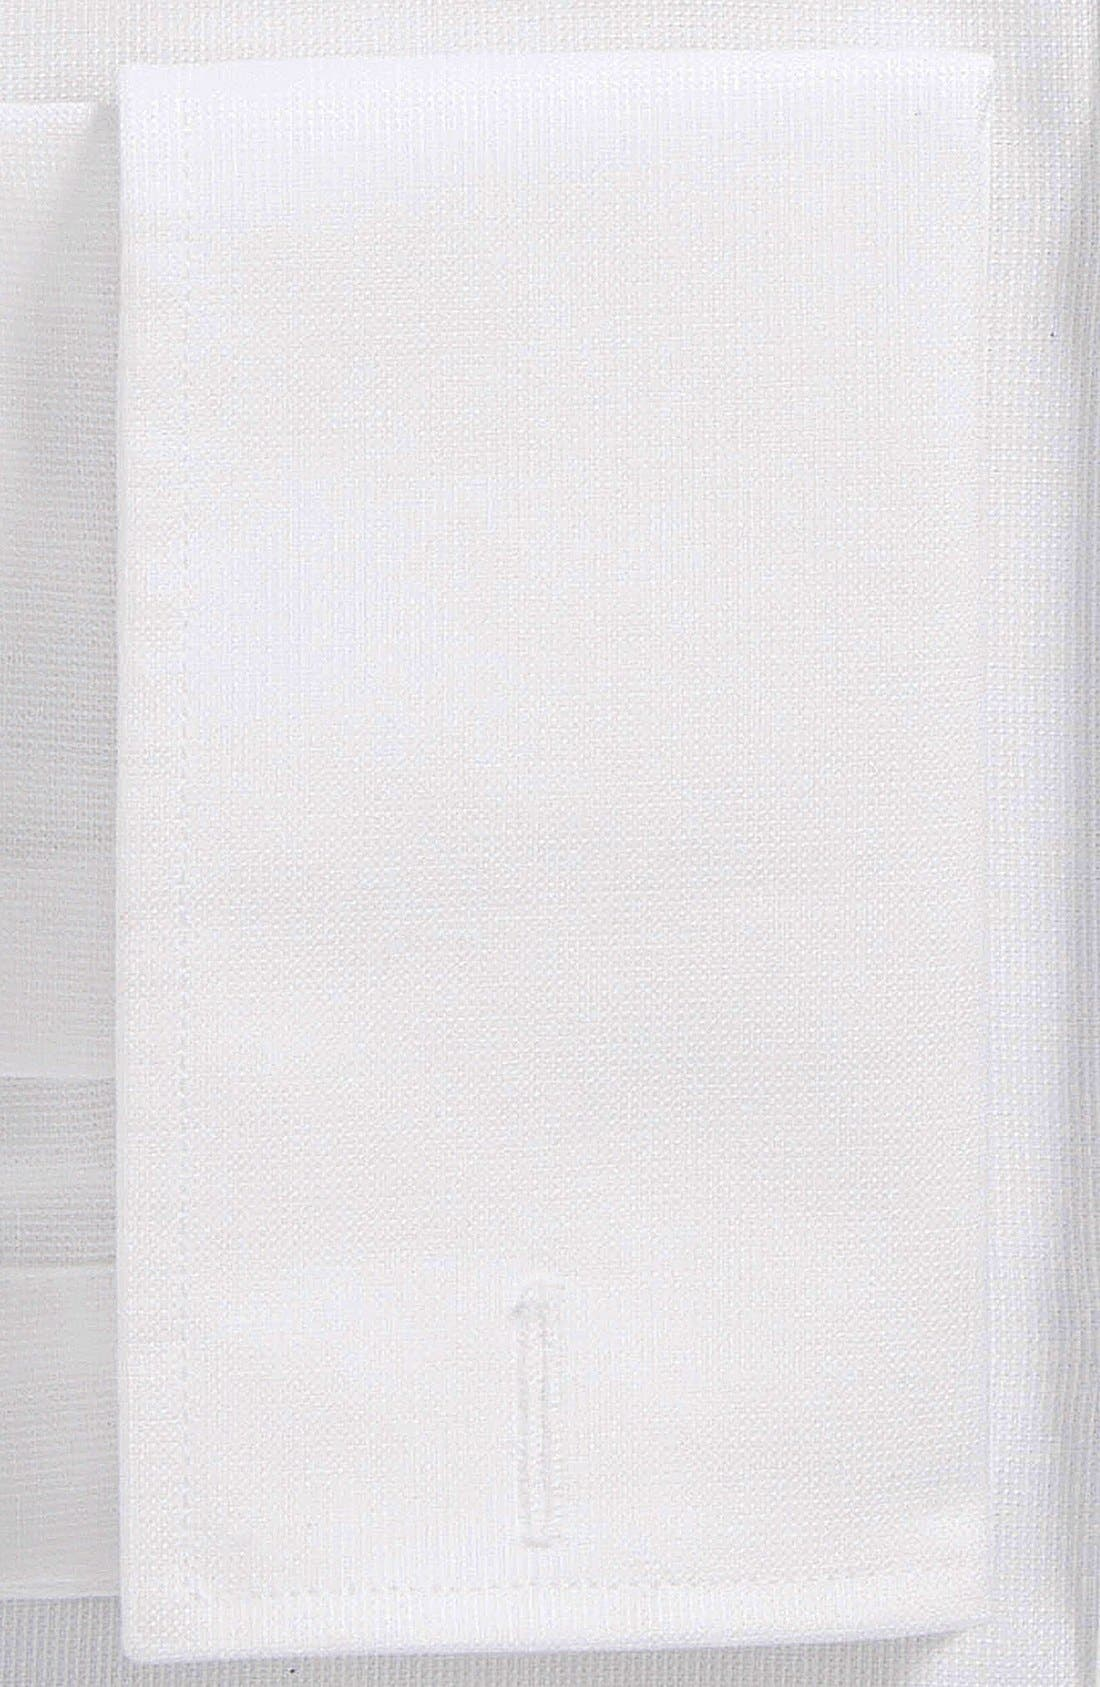 Nordstrom Traditional Fit Non-Iron Dress Shirt,                             Alternate thumbnail 2, color,                             White